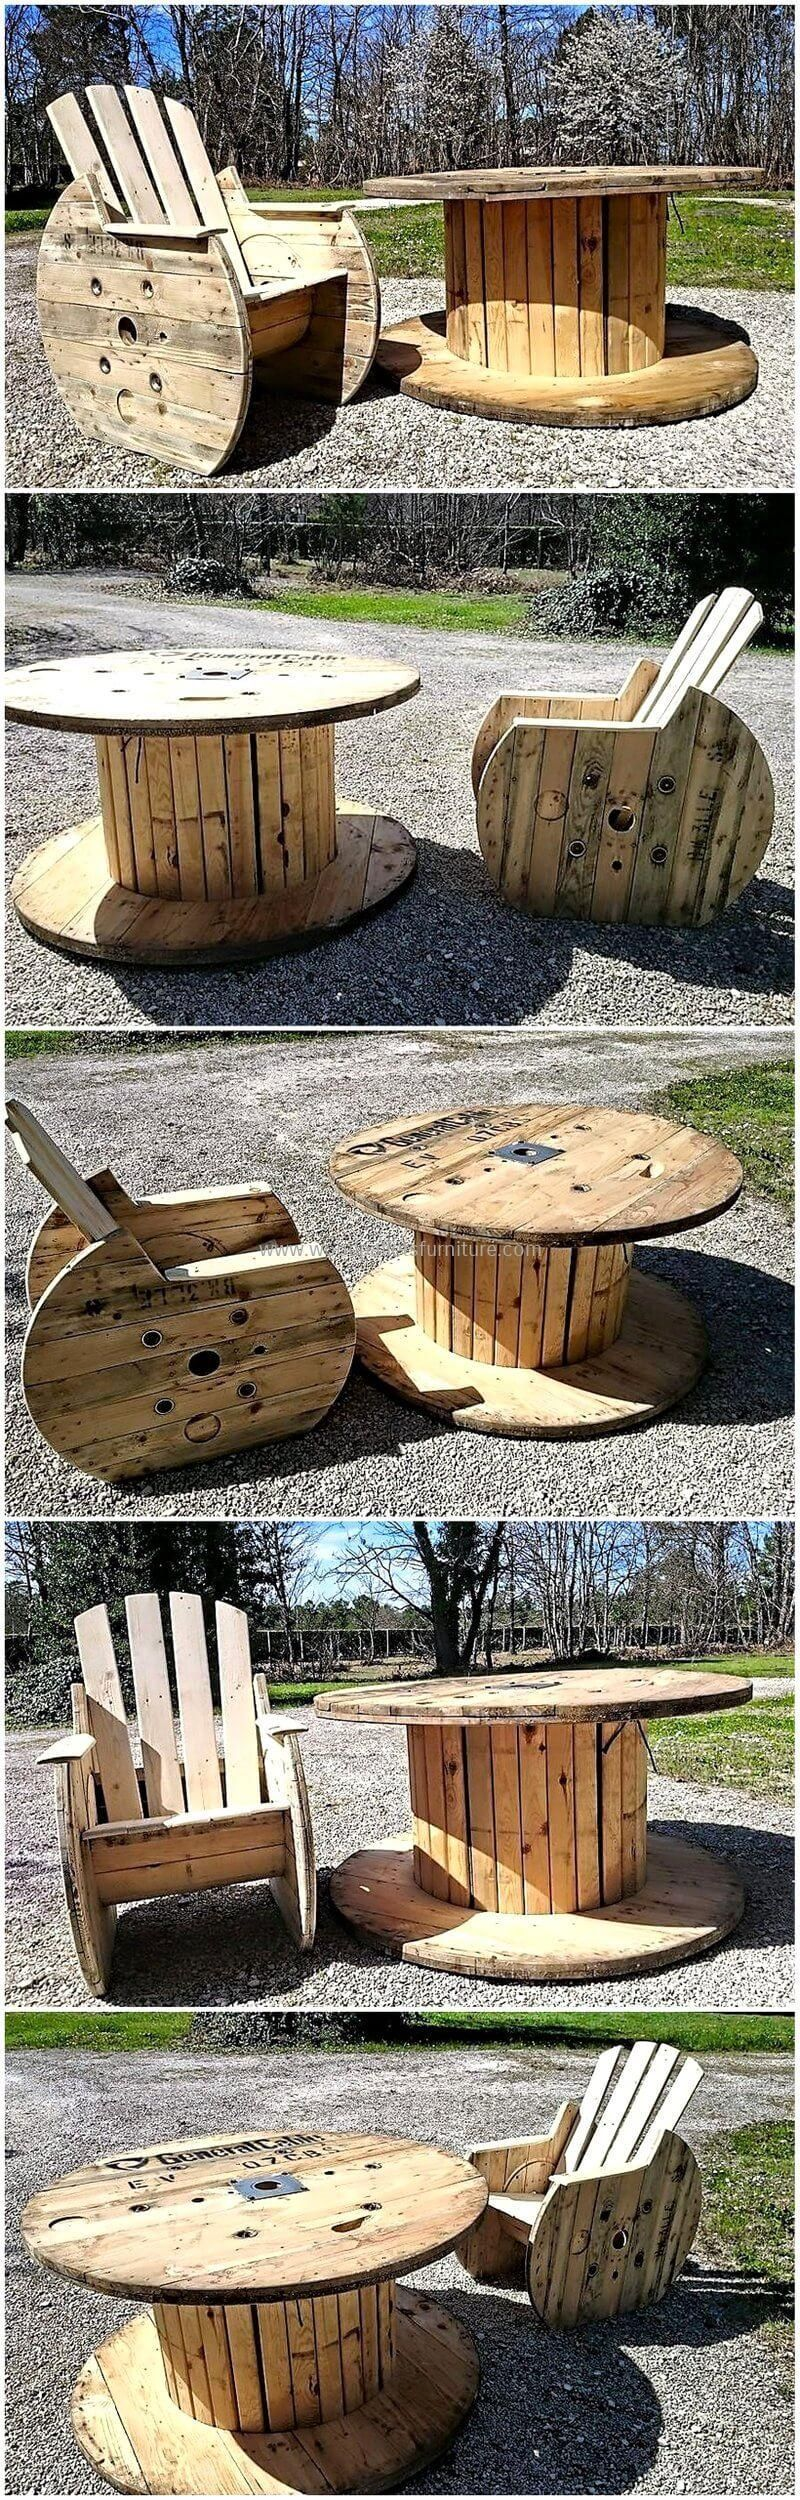 The furniture is not difficult to create when the wood ...